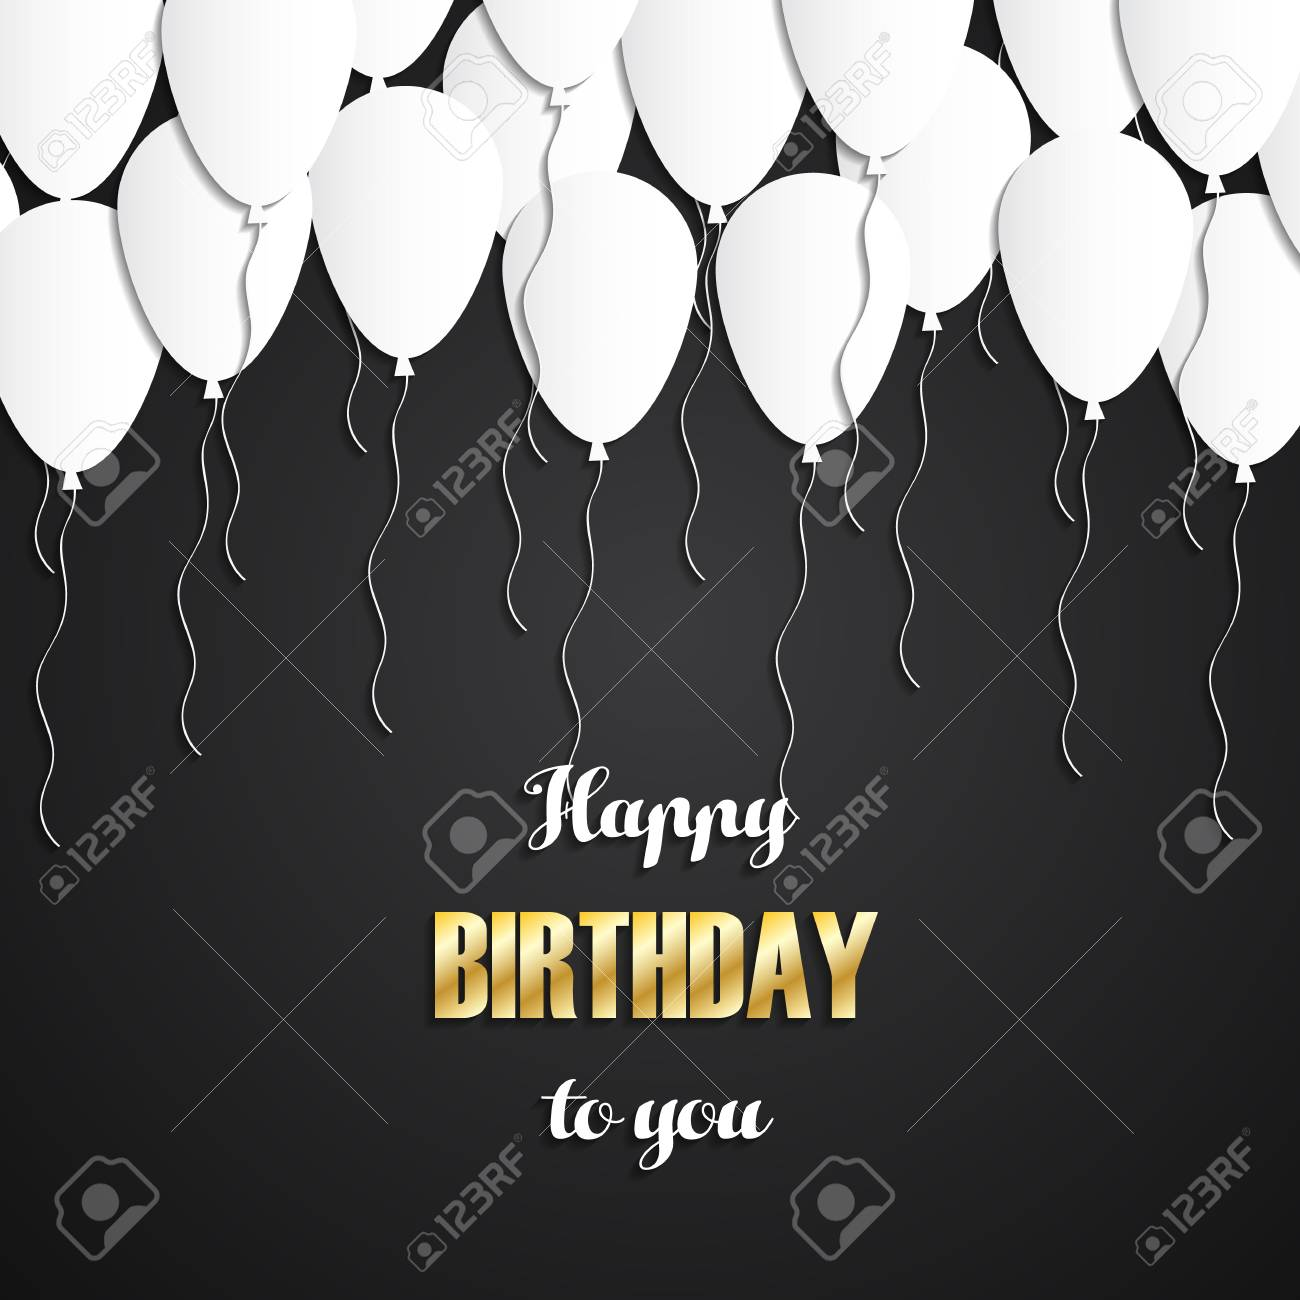 Happy Birthday Greeting Card With White Balloons And Gold Letters Royalty Free Cliparts Vectors And Stock Illustration Image 69605074